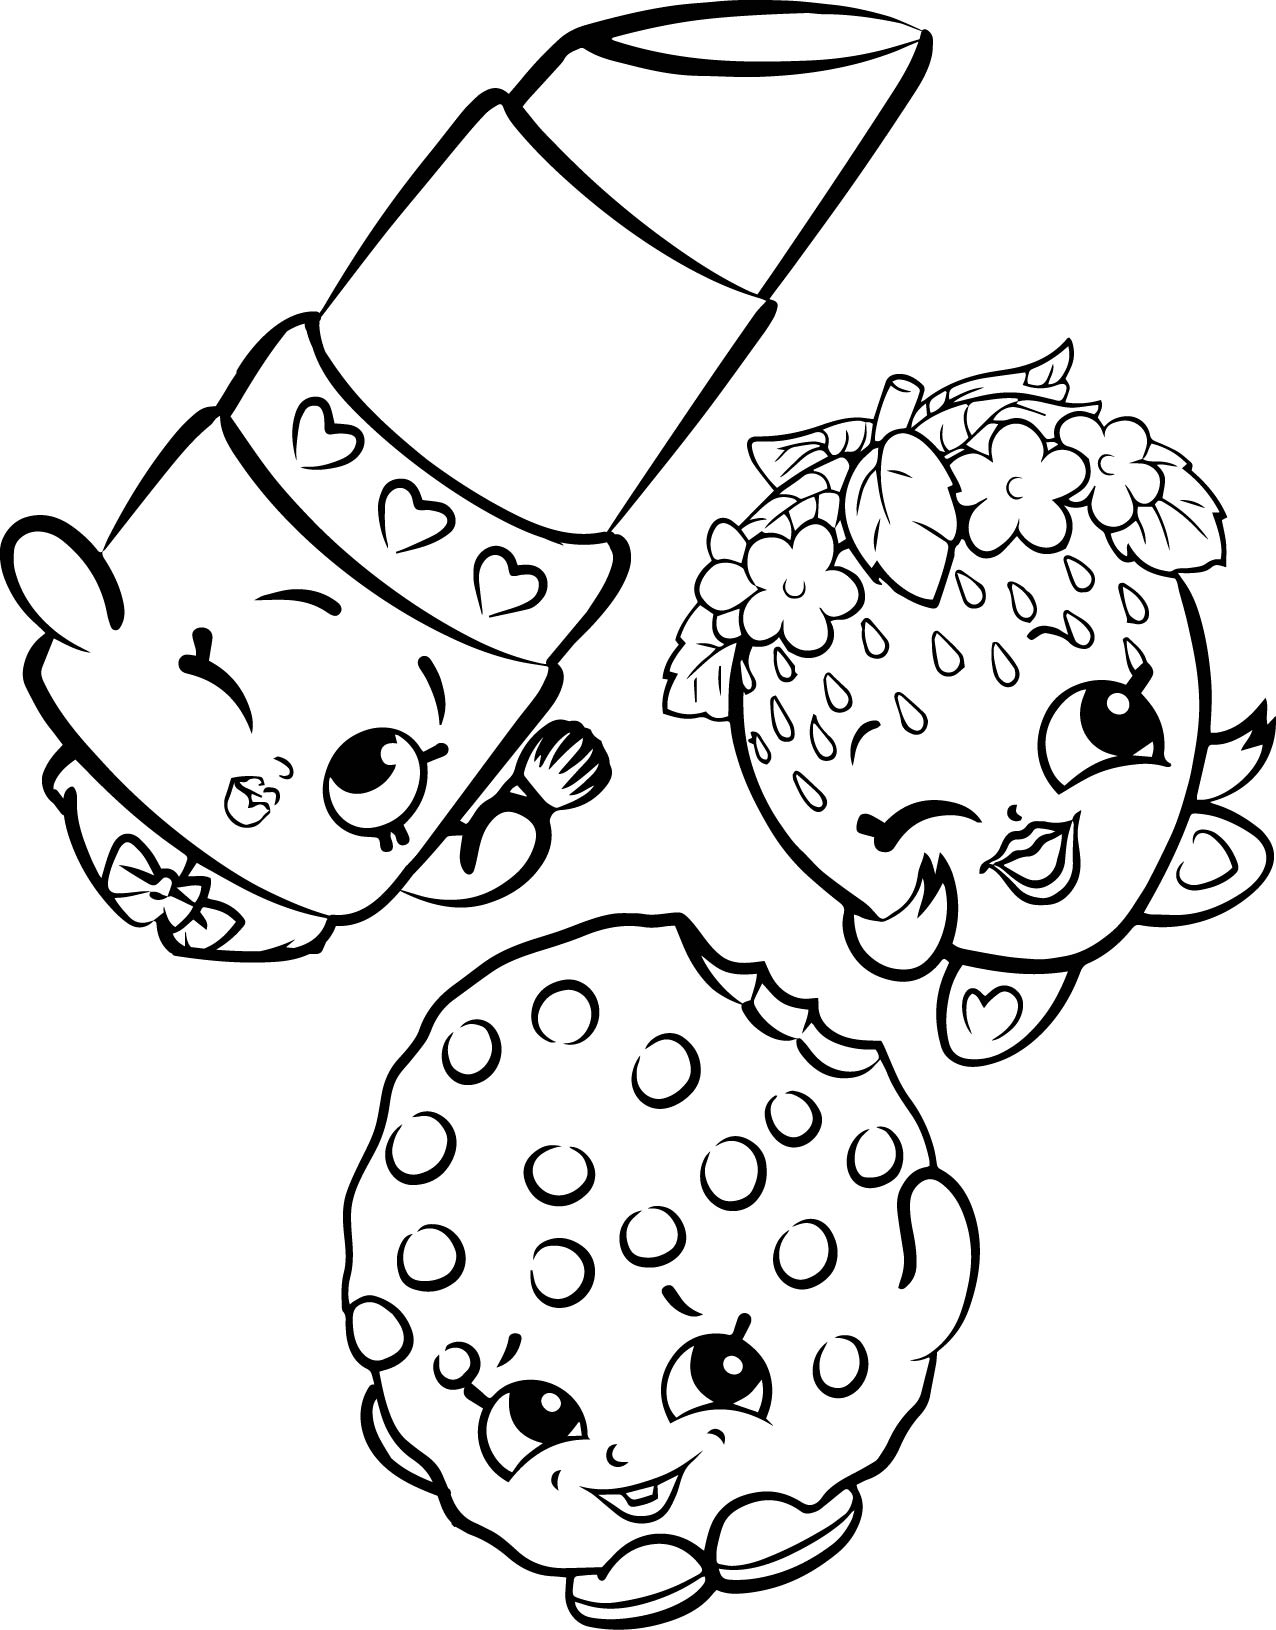 Free Shopkins Printables Coloring Pages Download 4 Shopkins Printable Of Shopkins Coloring Pages 71 Collection